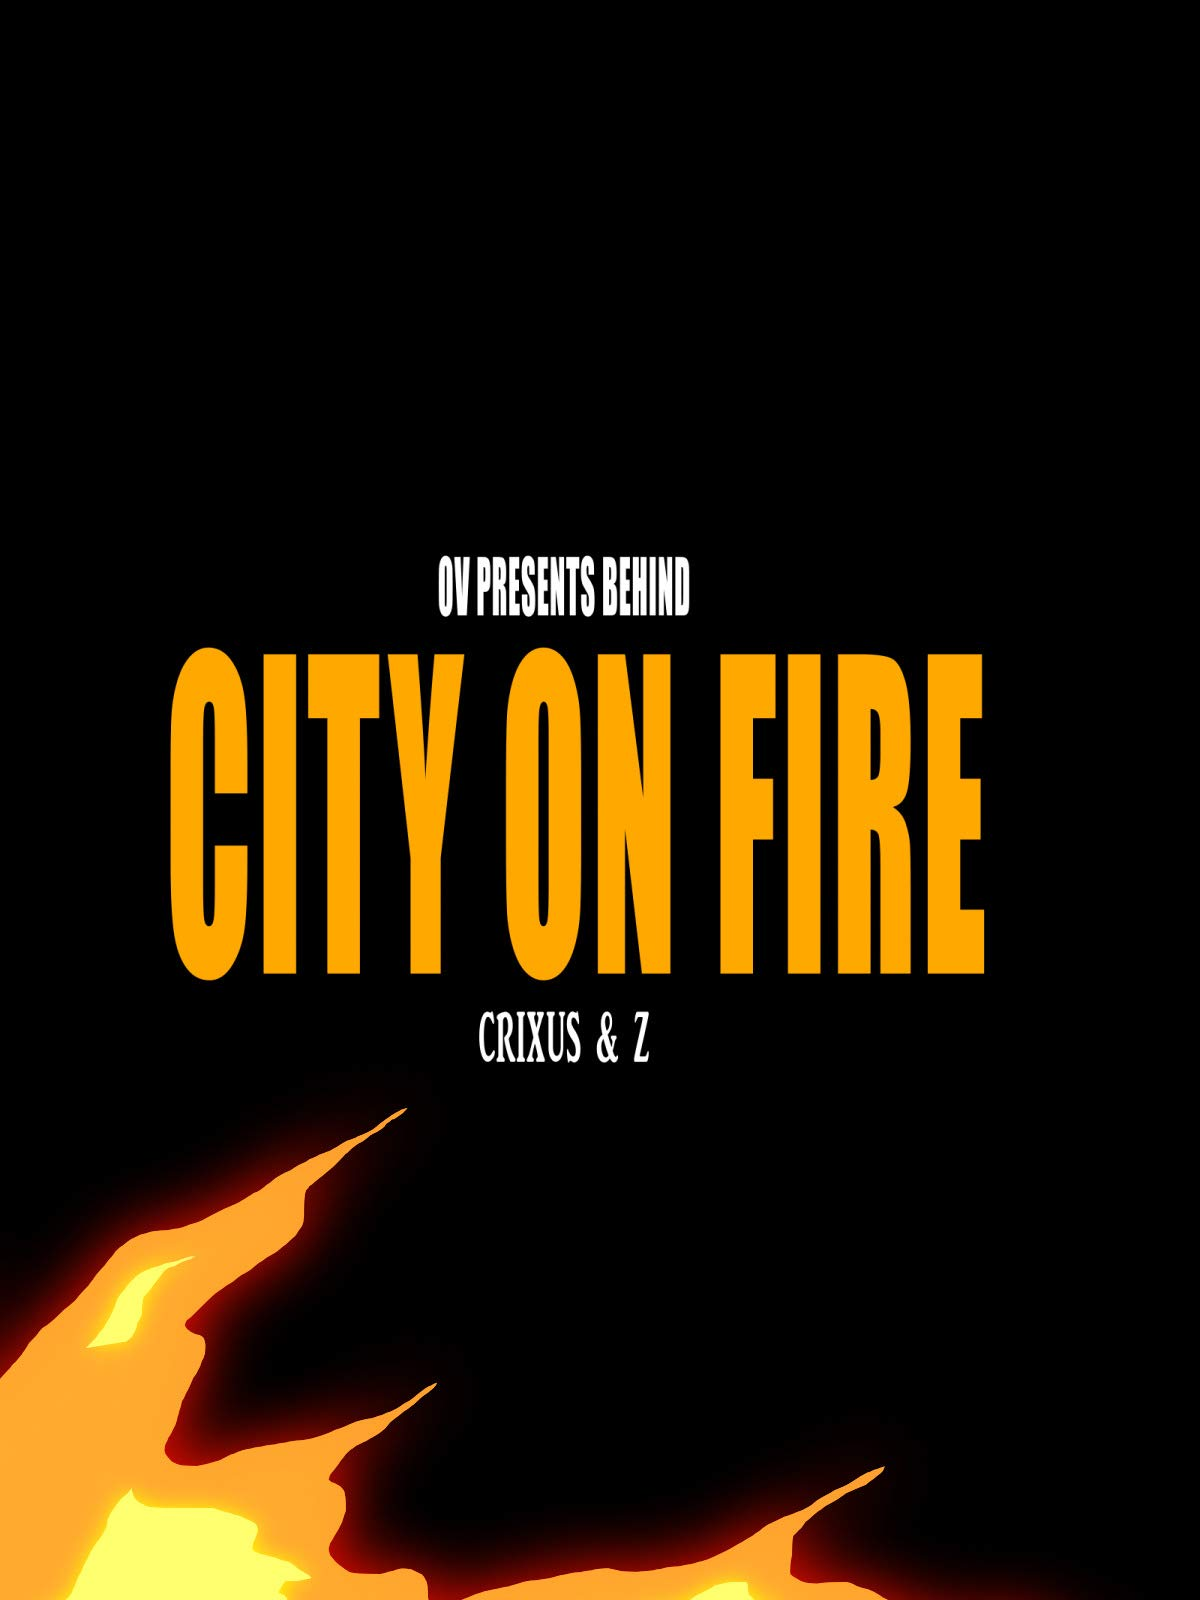 OV Presents Behind City On Fire - Crixus & Z on Amazon Prime Video UK